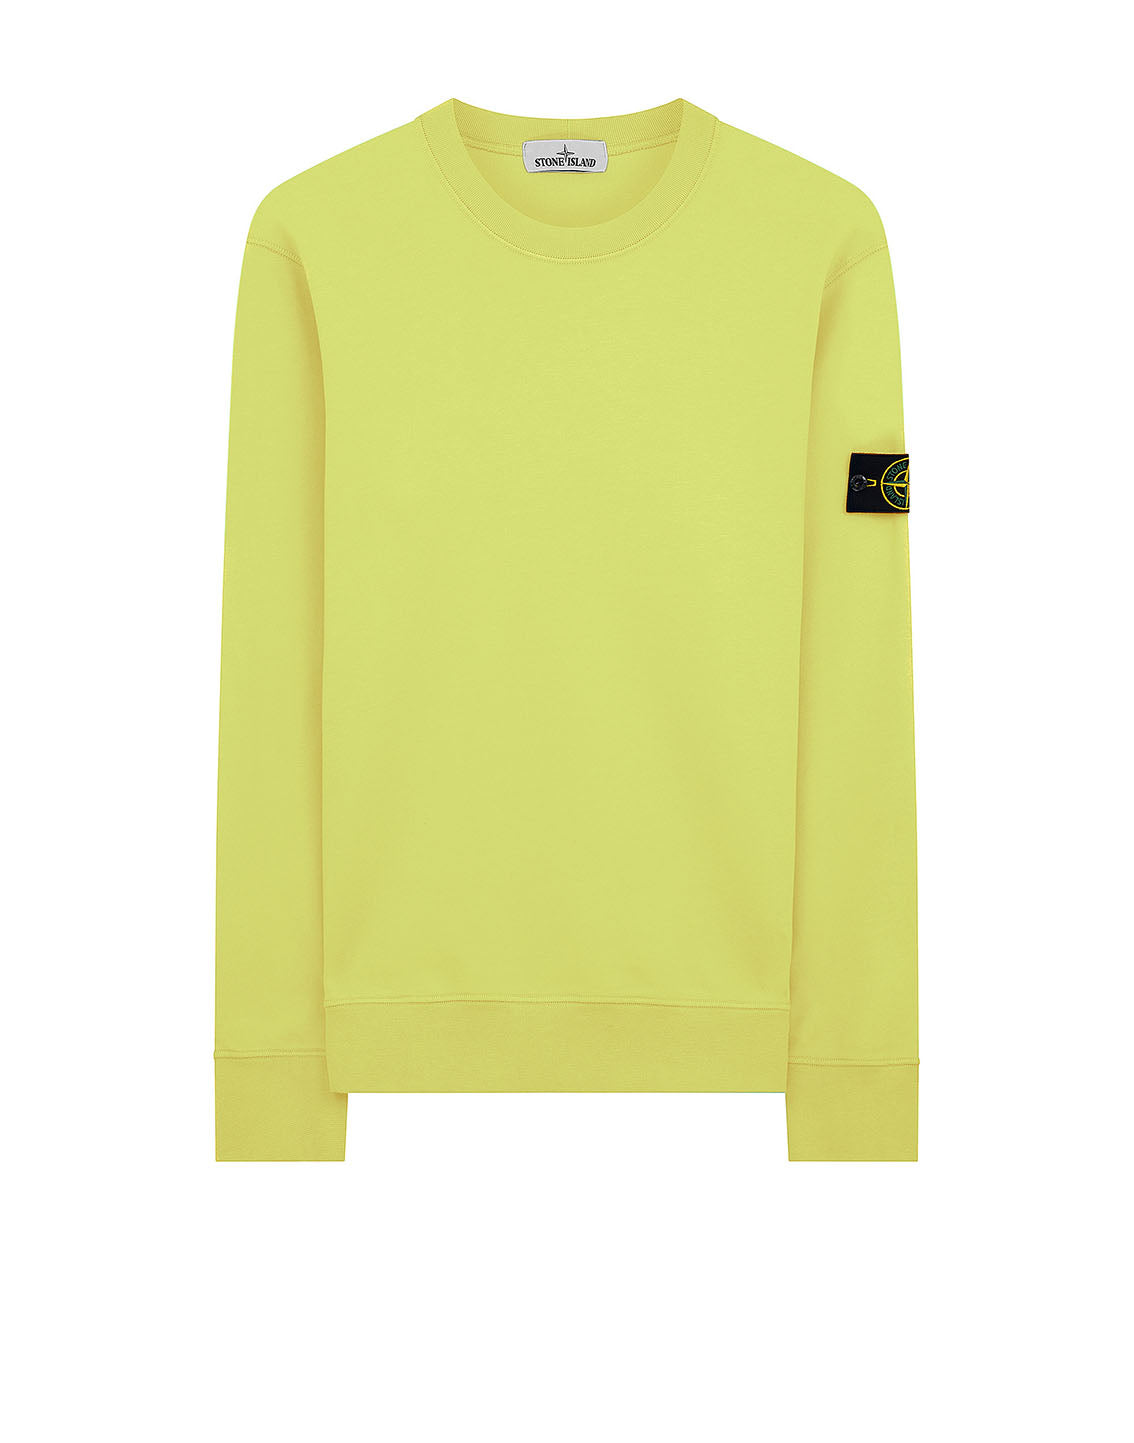 63051 Sweatshirt in Pistachio